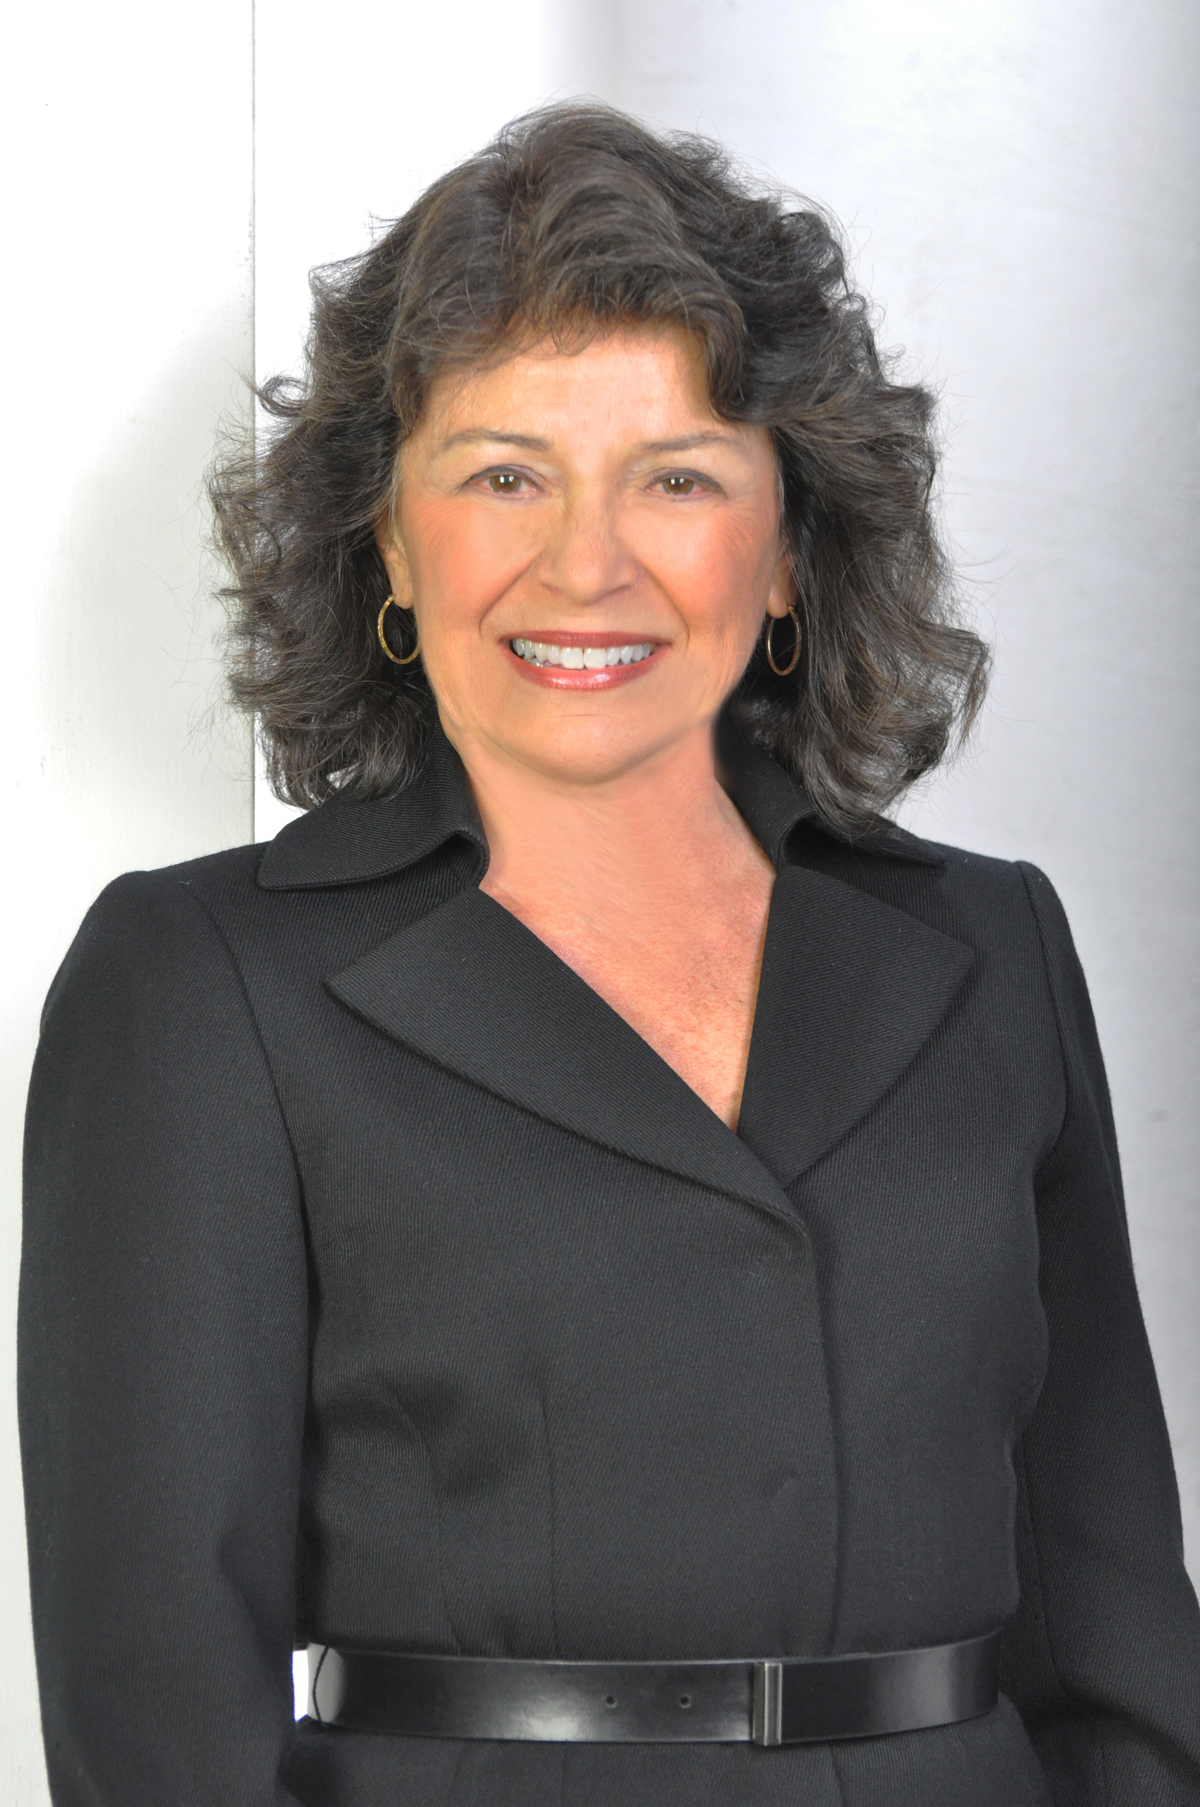 Joanne DiBenedetto is a licensed real estate agent in Rio Verde AZ